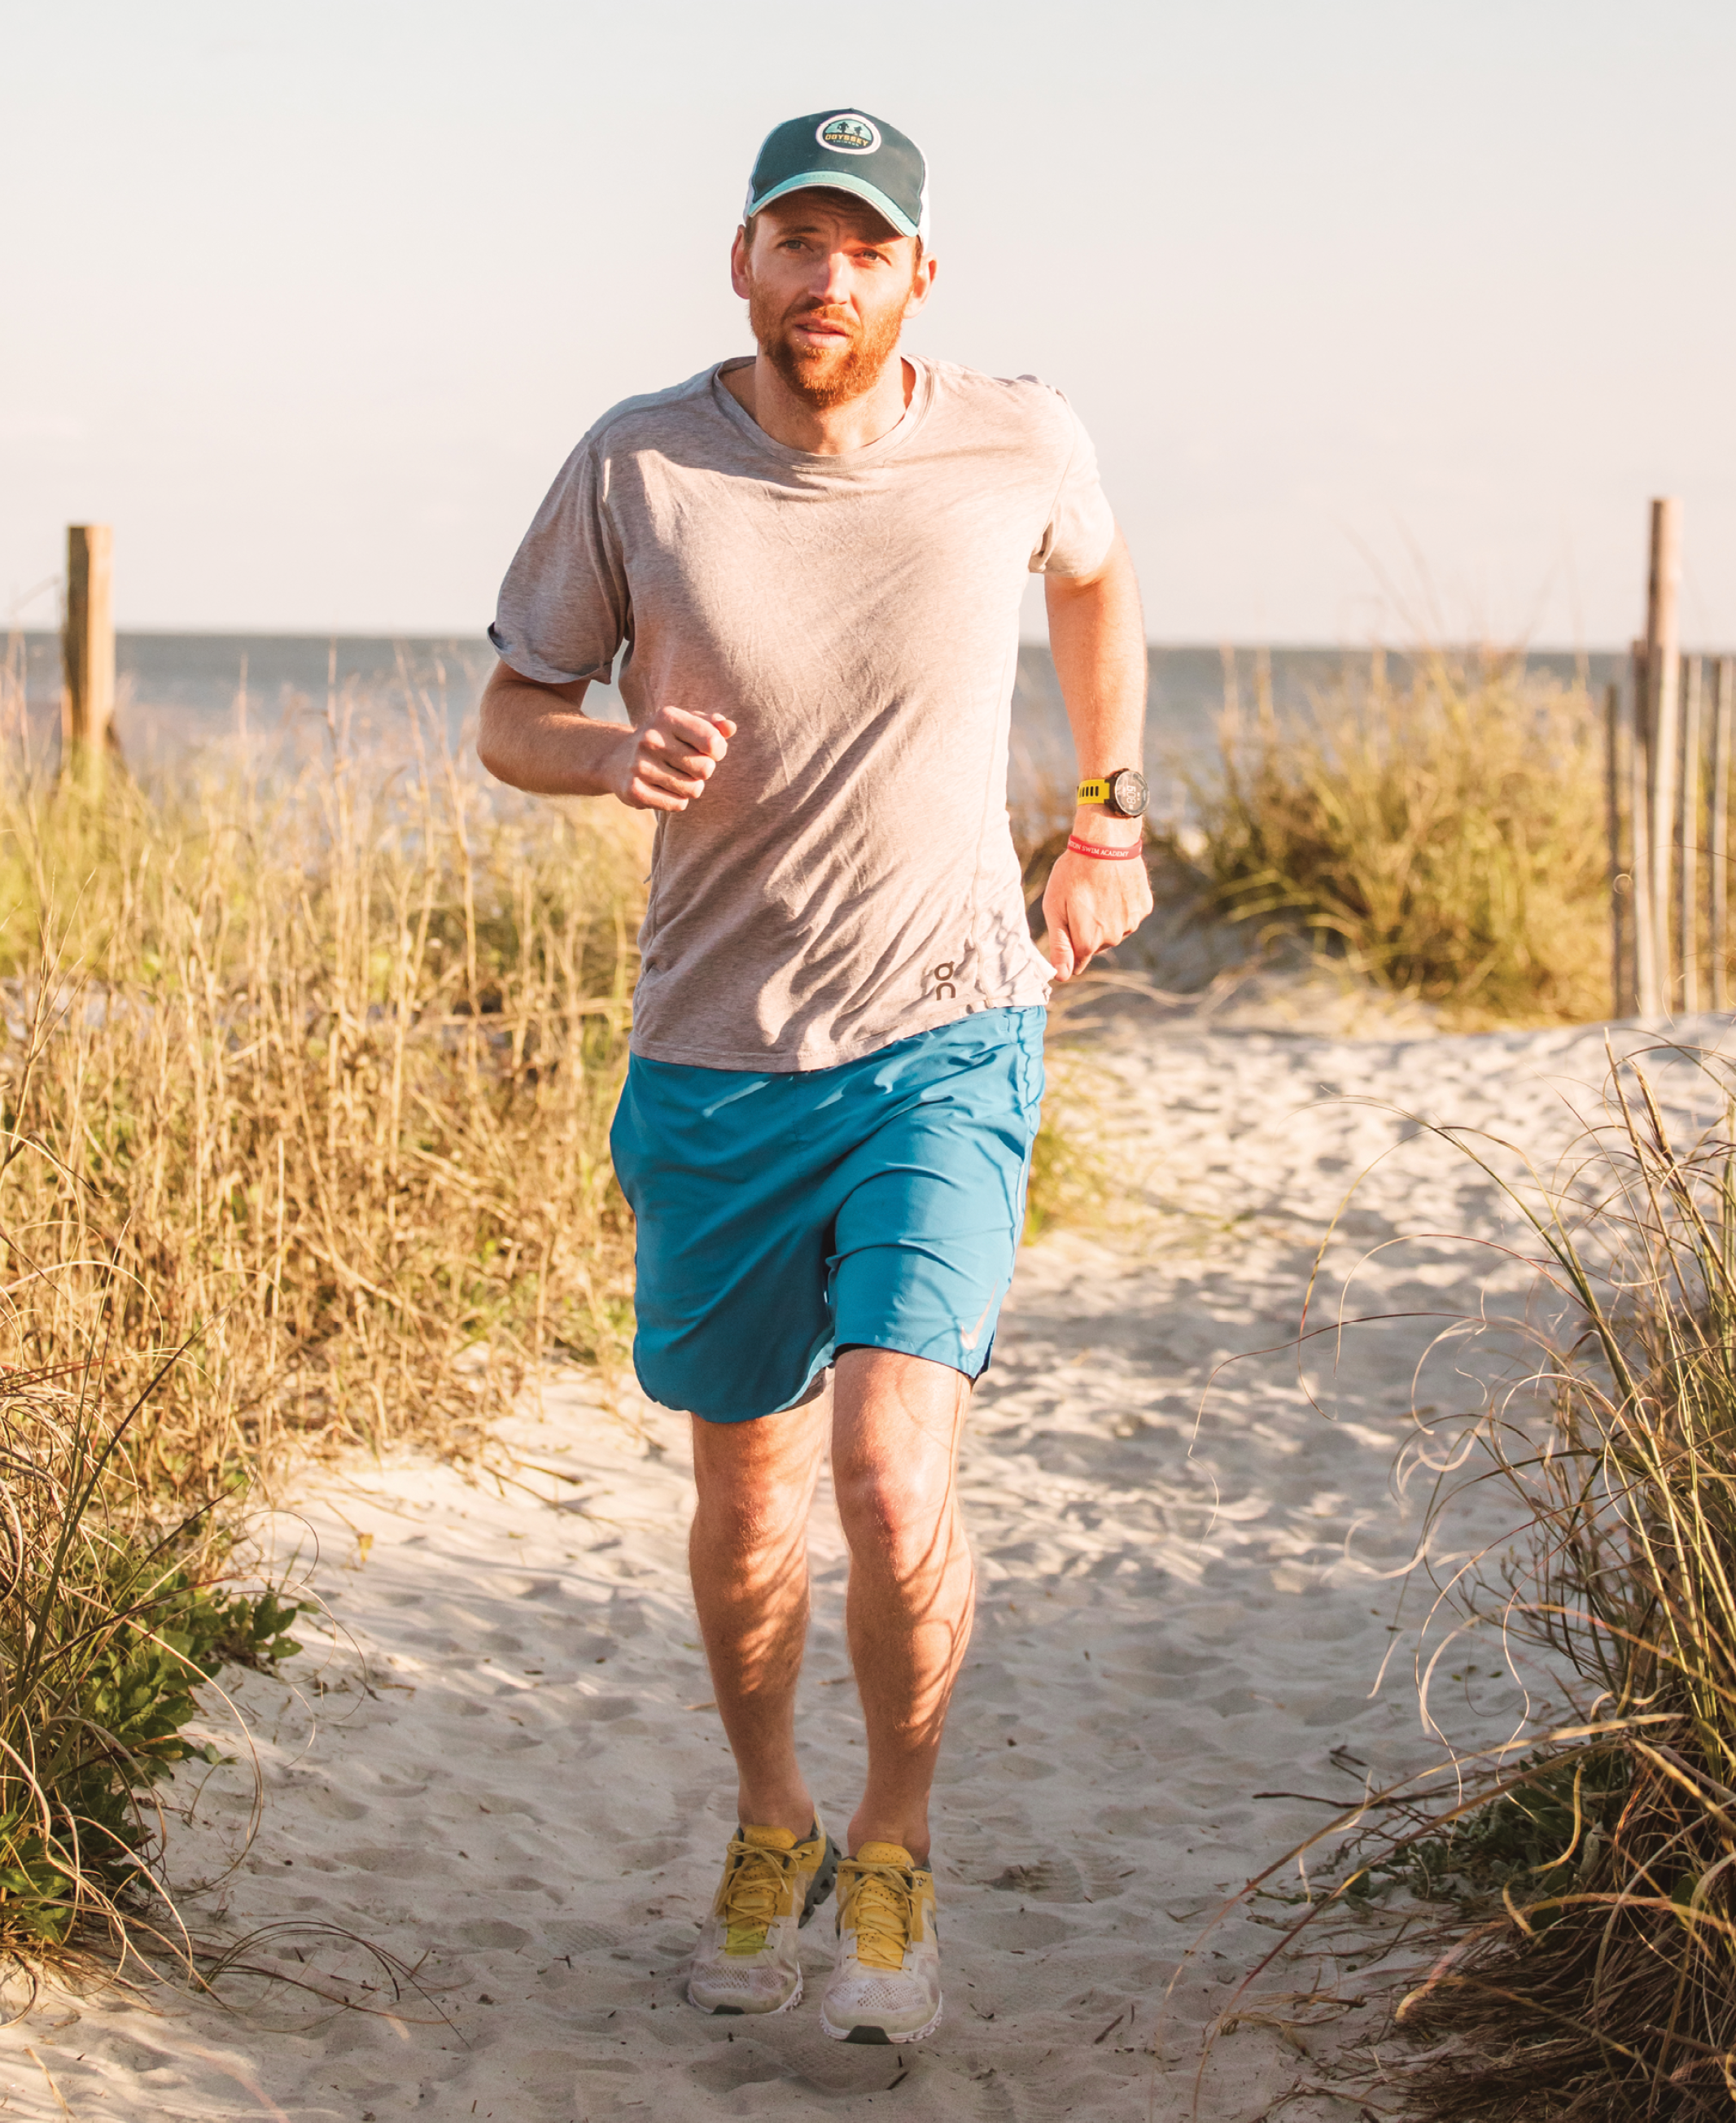 """""""It was extremely frustrating to not be able to run—it's my mental release during busy days,"""" says James Island resident Will Ramsey. """"I'm grateful Dr. Schoderbek could give me an answer and help create a plan to heal."""""""